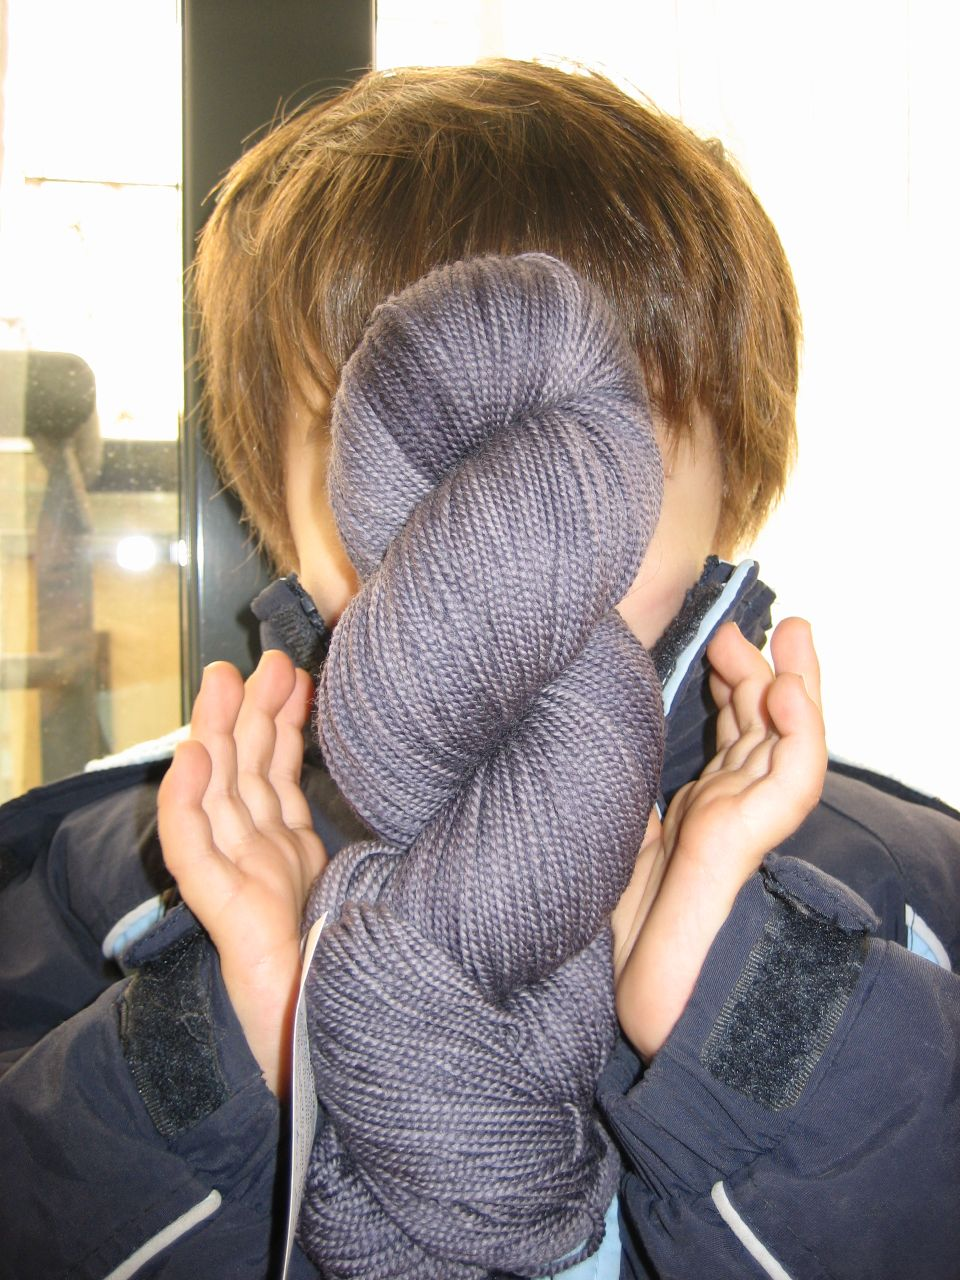 Jan showing lenten rose yarn